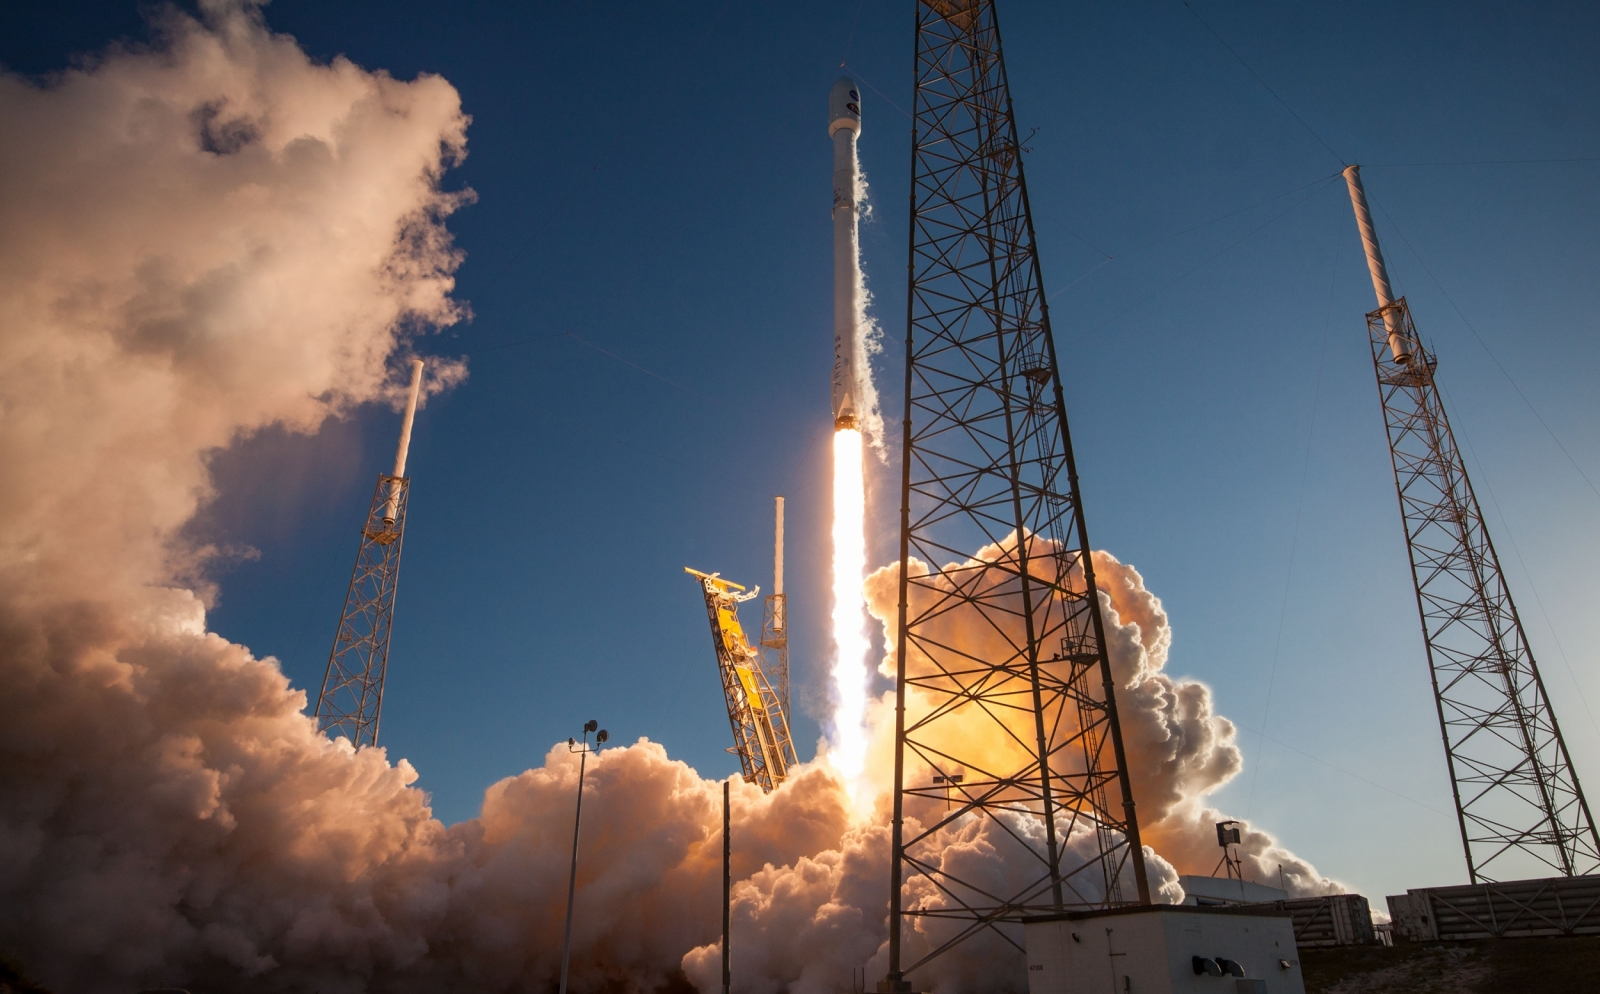 TESS is a NASA-funded mission developed collaboratively with the NASA Goddard Space Flight Center—it launched on April 18 carrying four cameras designed by the Laboratory. The satellite's mission is to search for exoplanets. Photo: SpaceX